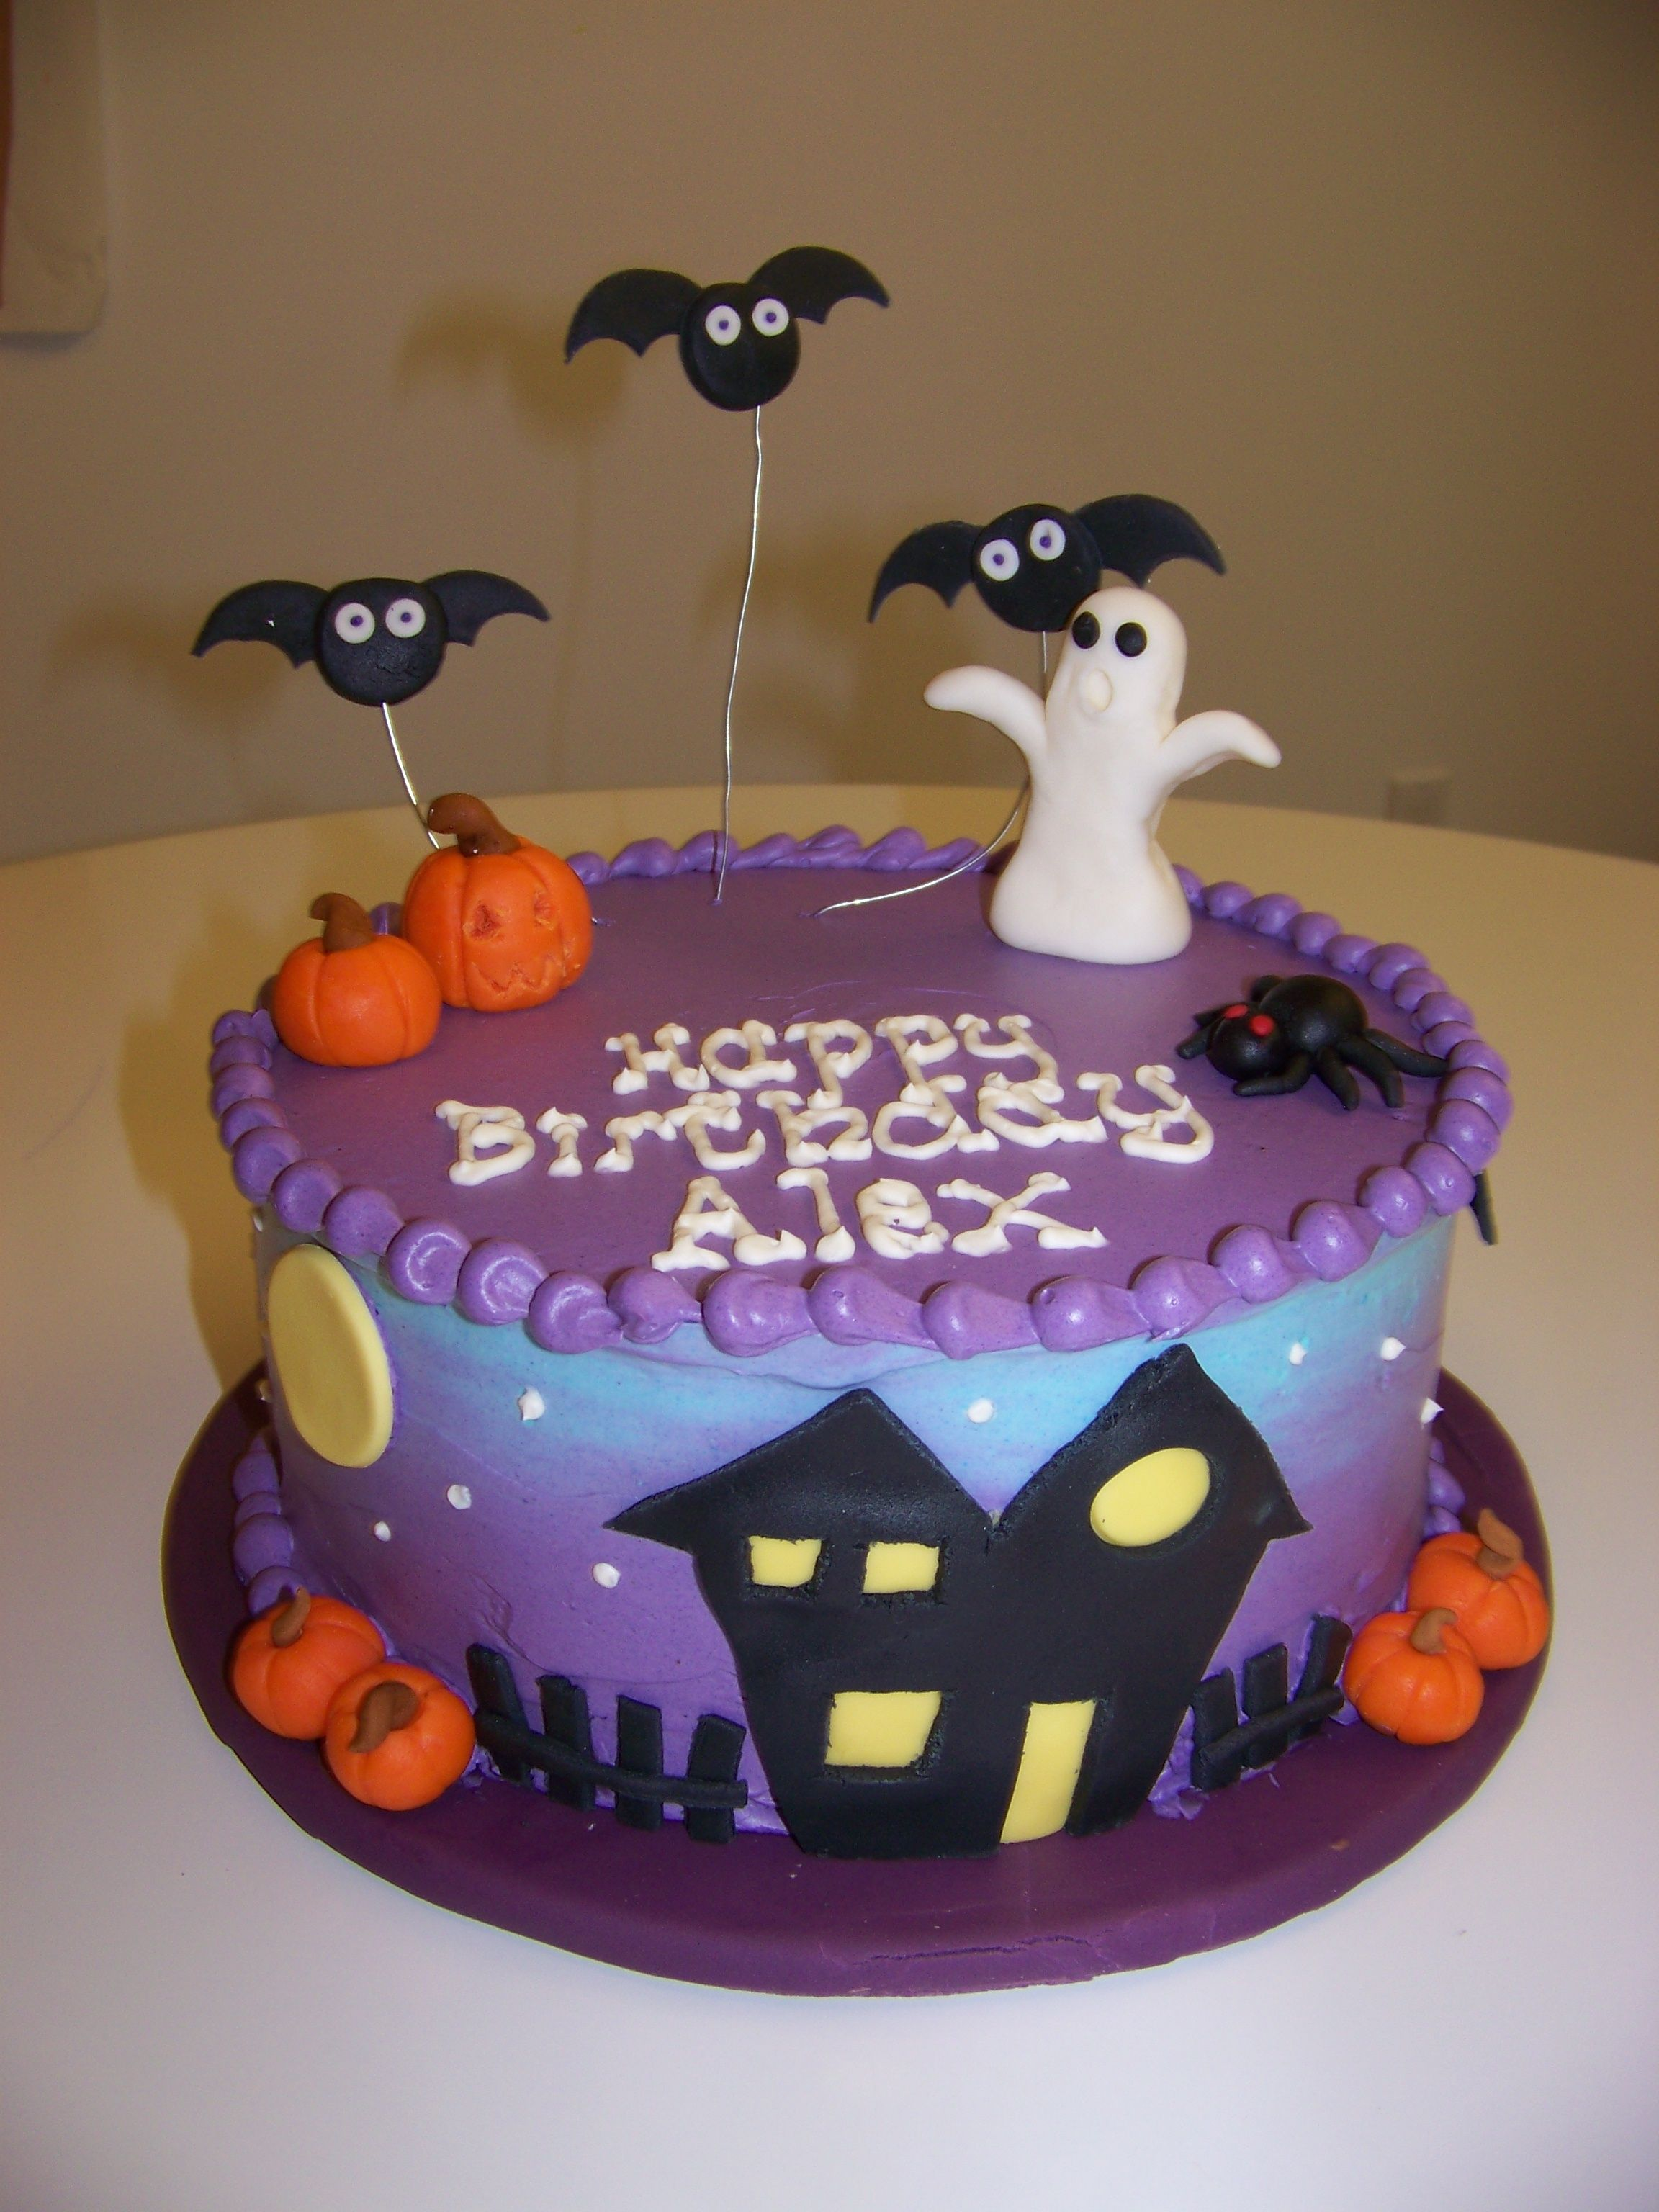 Admirable In The Moment Of Halloween Halloween Cake Is Very Good To Serve Funny Birthday Cards Online Fluifree Goldxyz